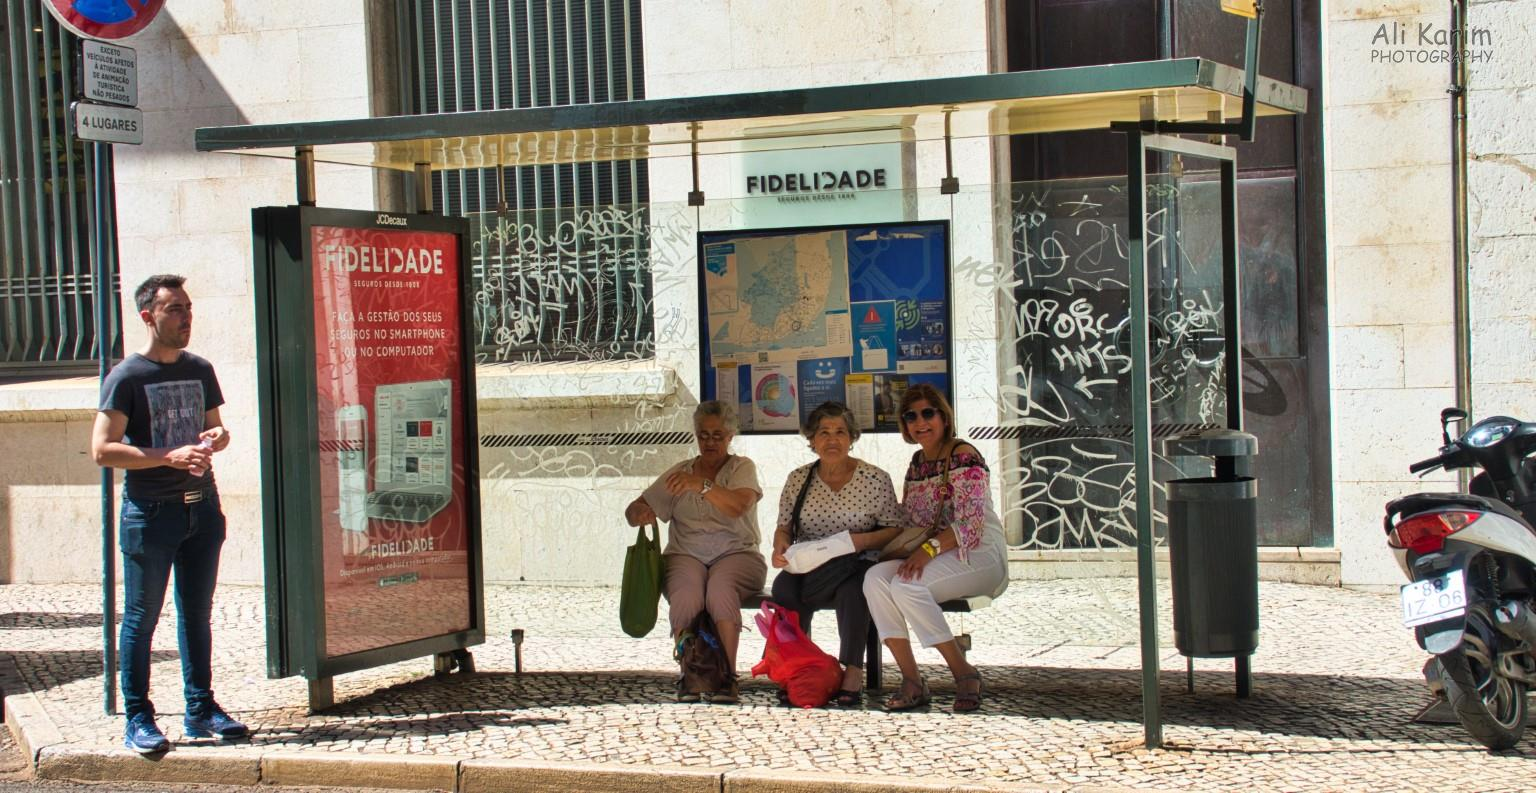 Awaiting the tram in Barrio Alto area with friendly locals